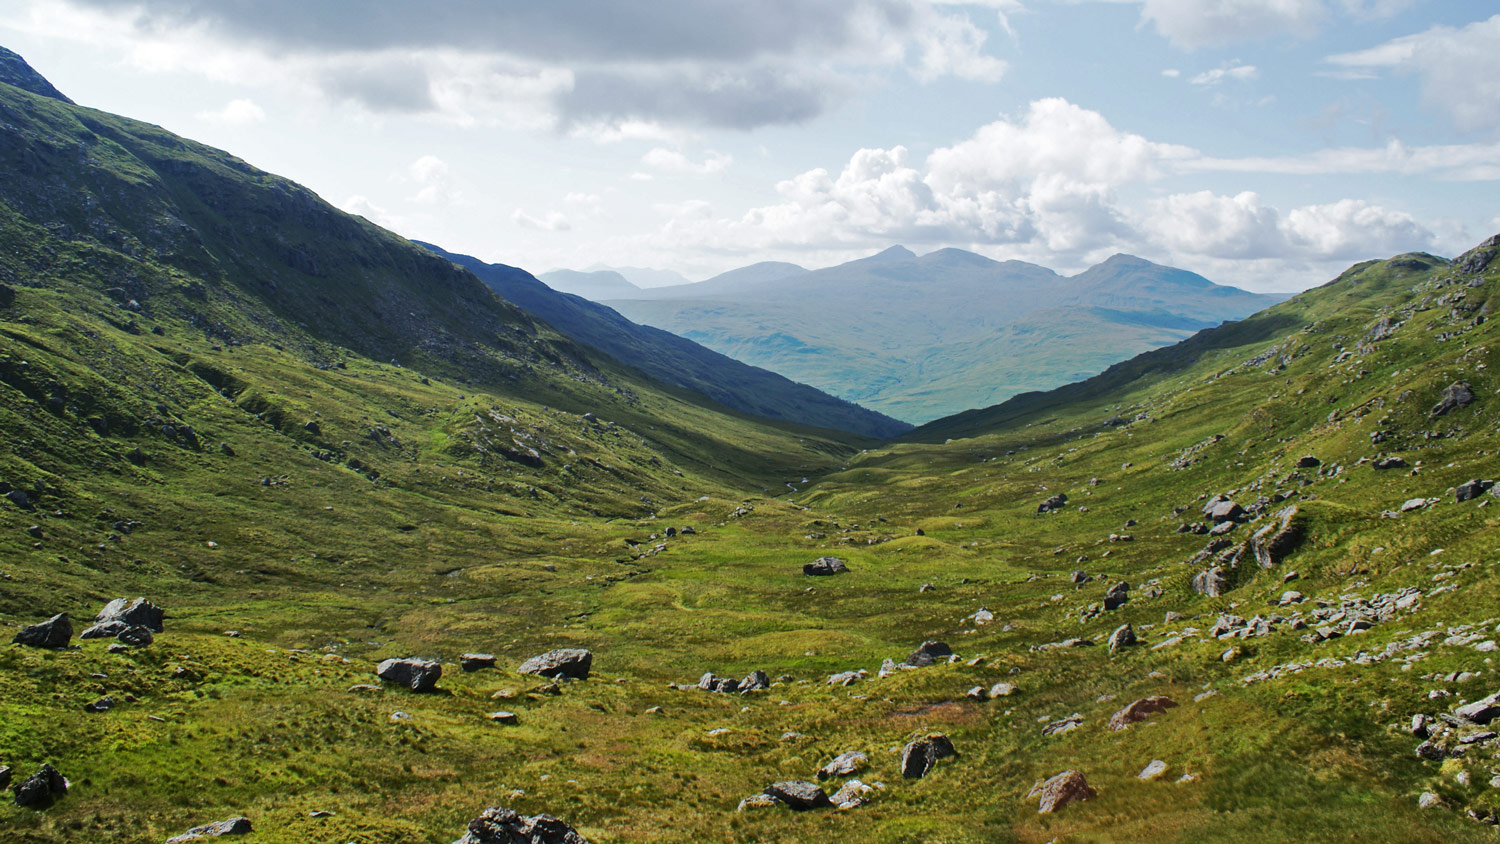 Looking down Coire a' Chuilinn towards Ben Lui.